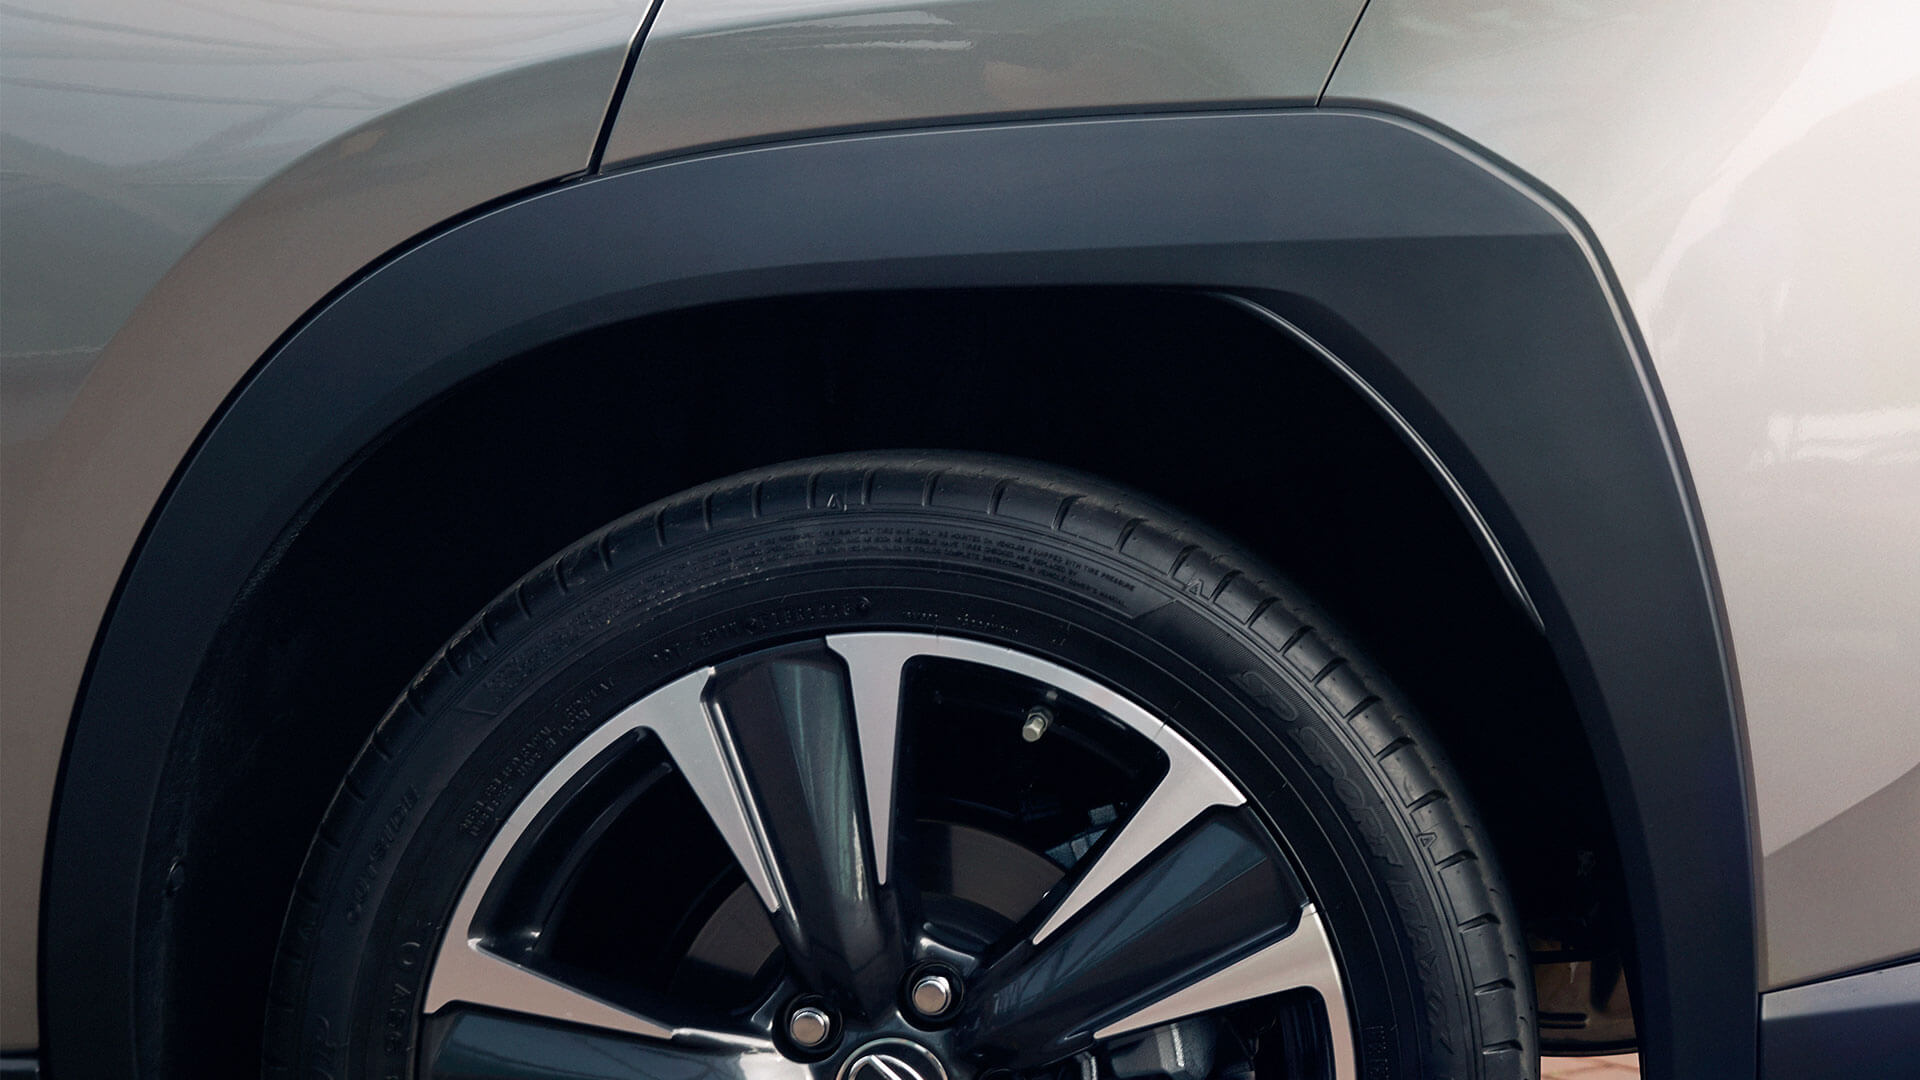 2019 lexus ux 250h experience hotspot stabilising wheels arch